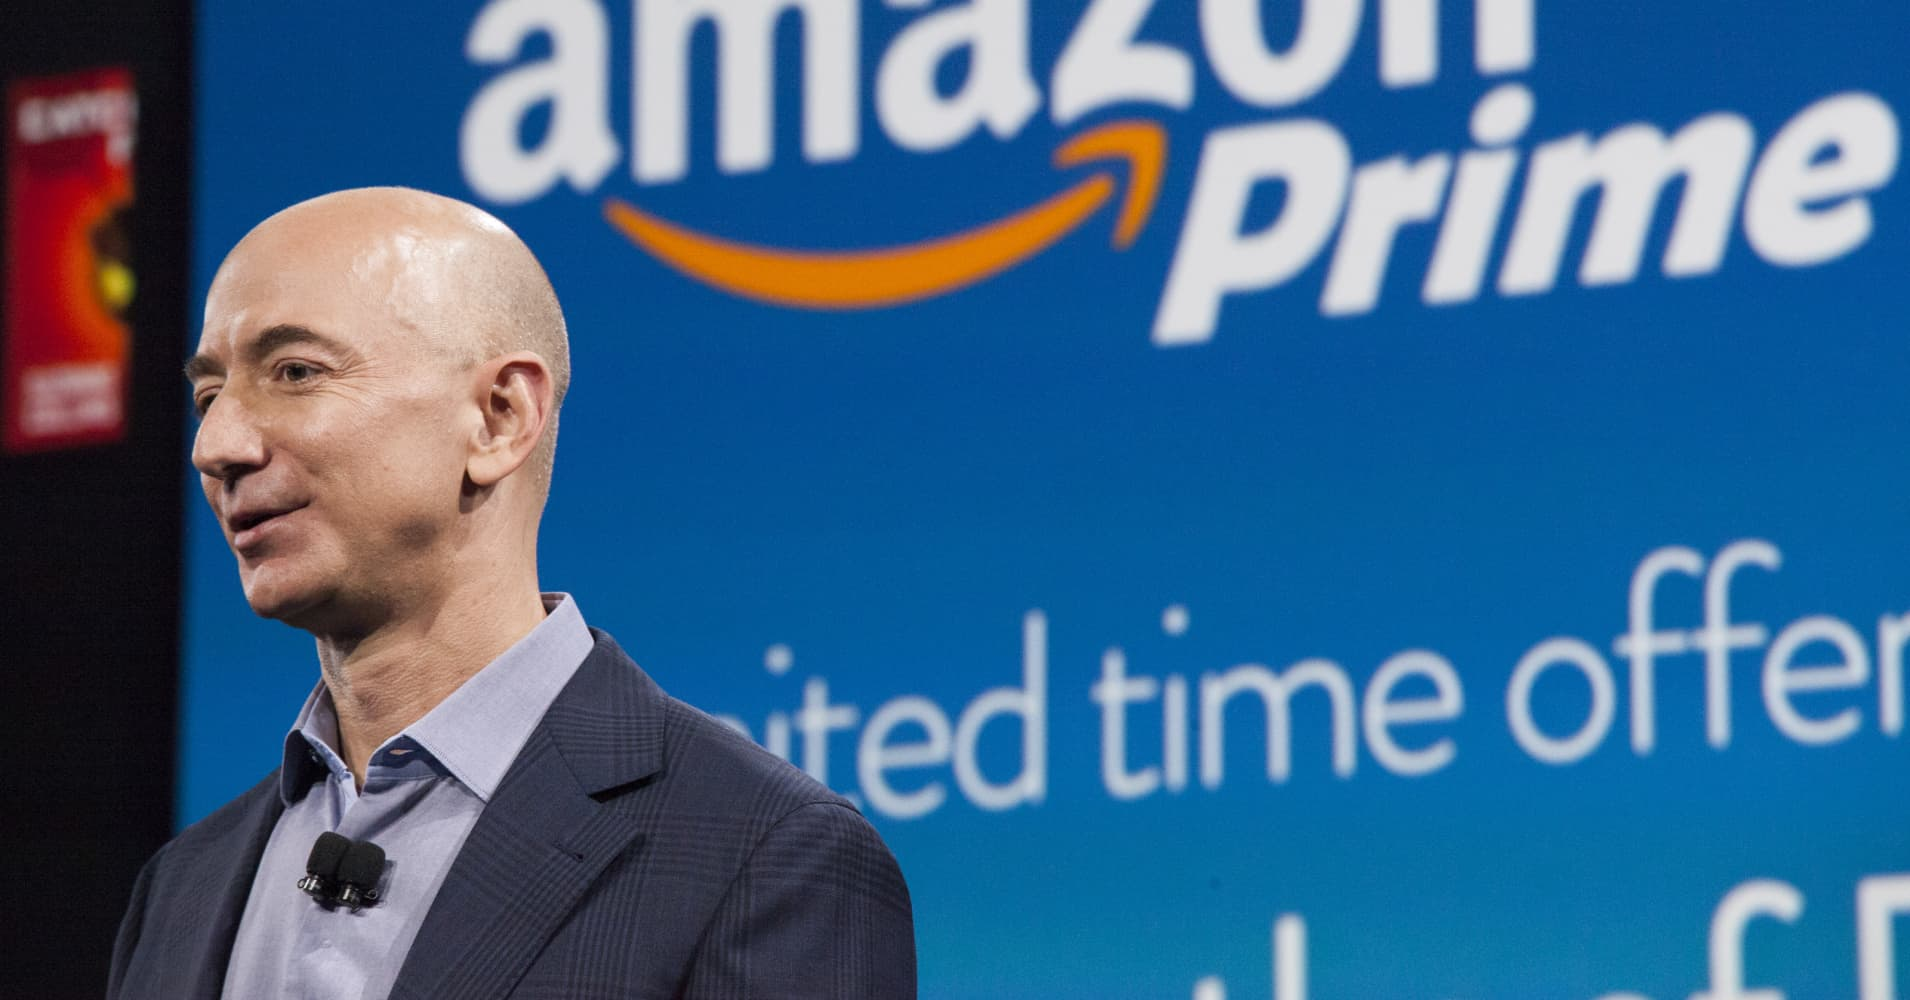 Amazon founder Jeff Bezos becomes newest $100bn billionaire thanks to Black Friday